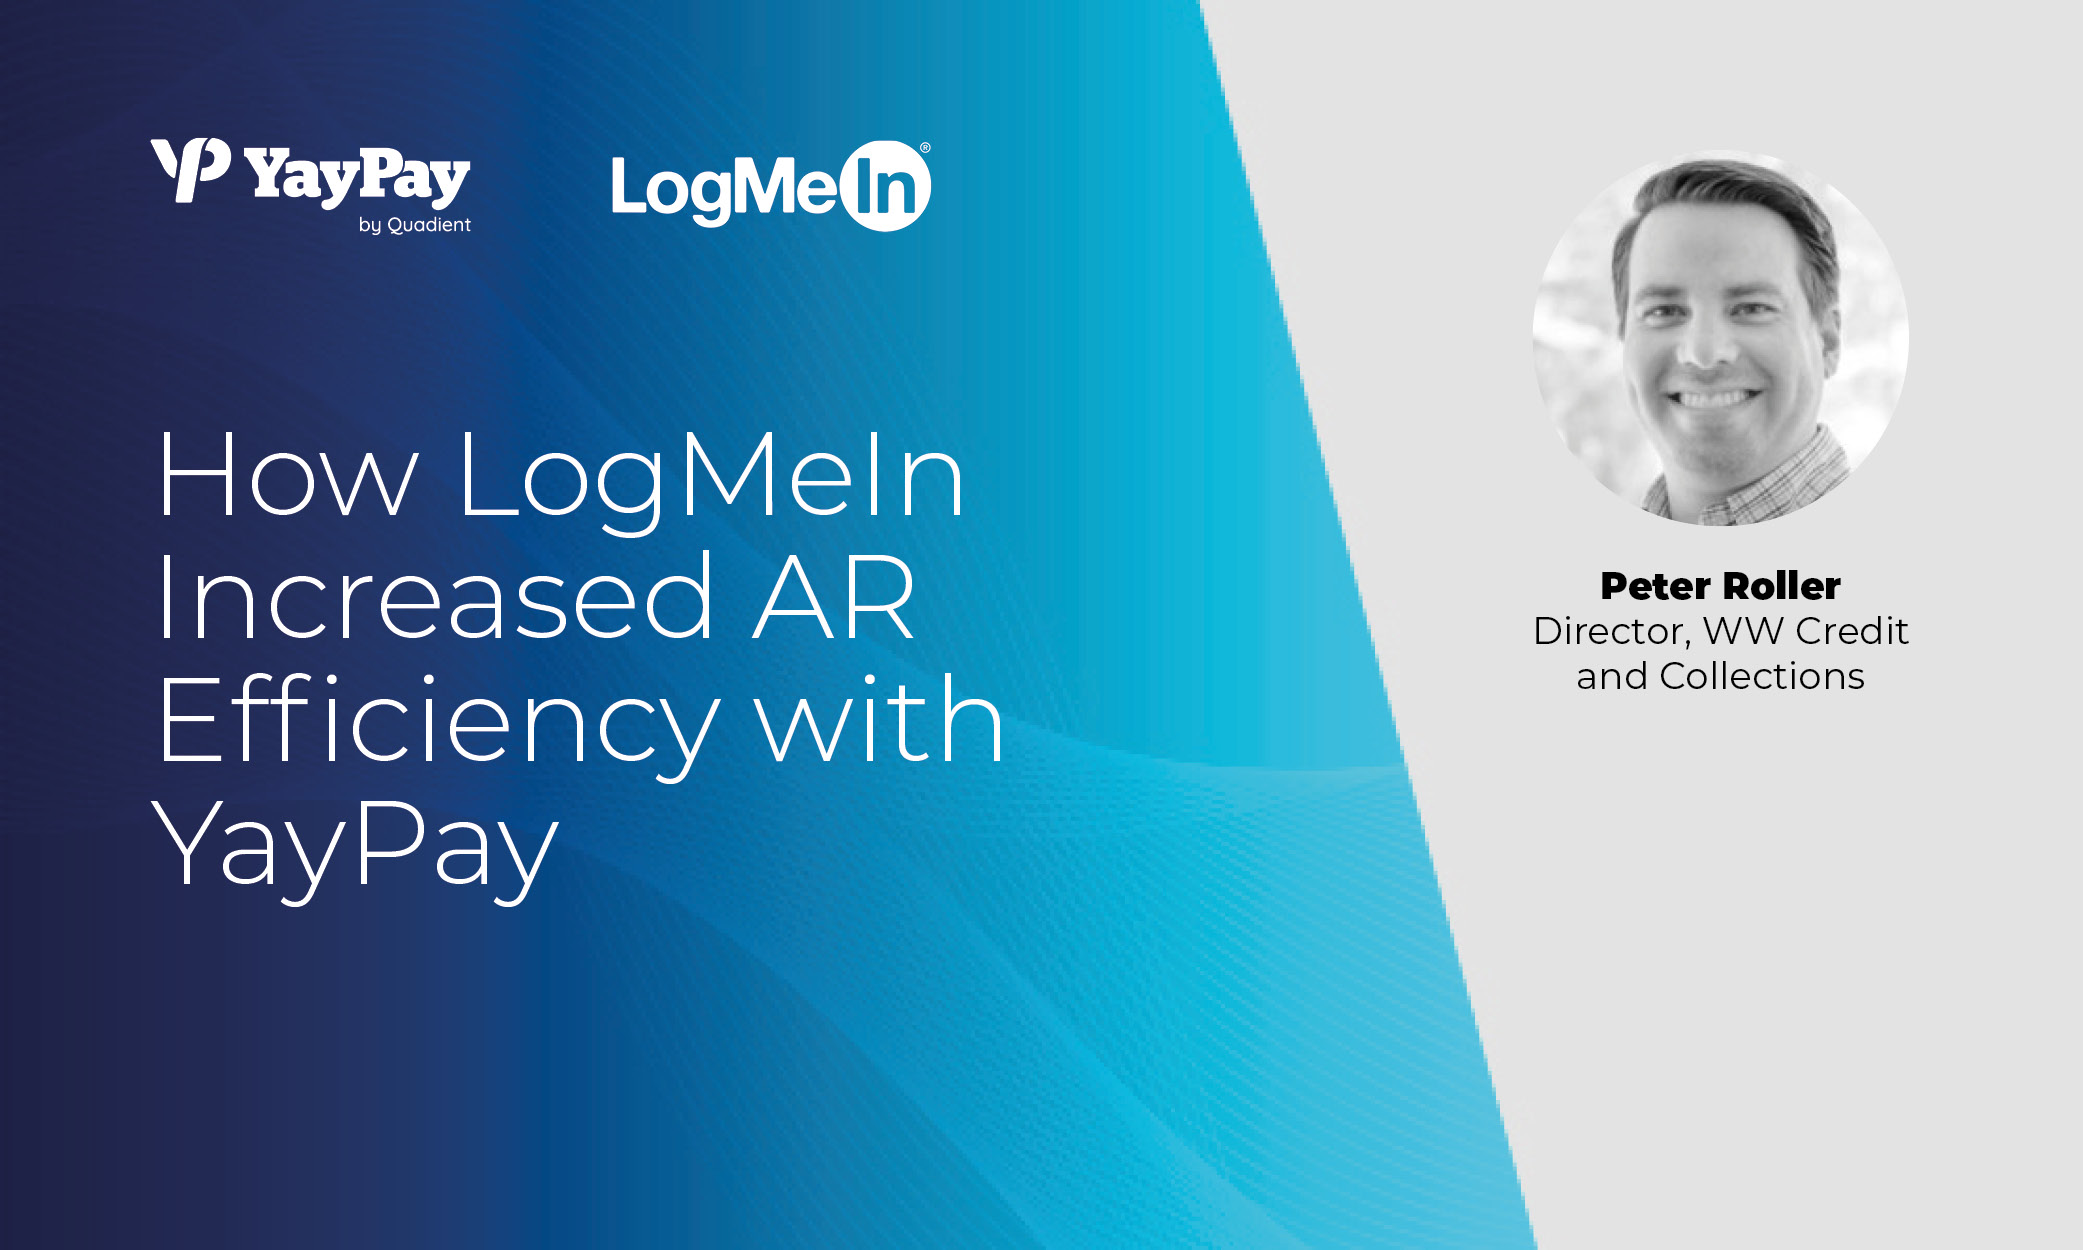 How LogMeIn Increased AR Efficiency with YayPay